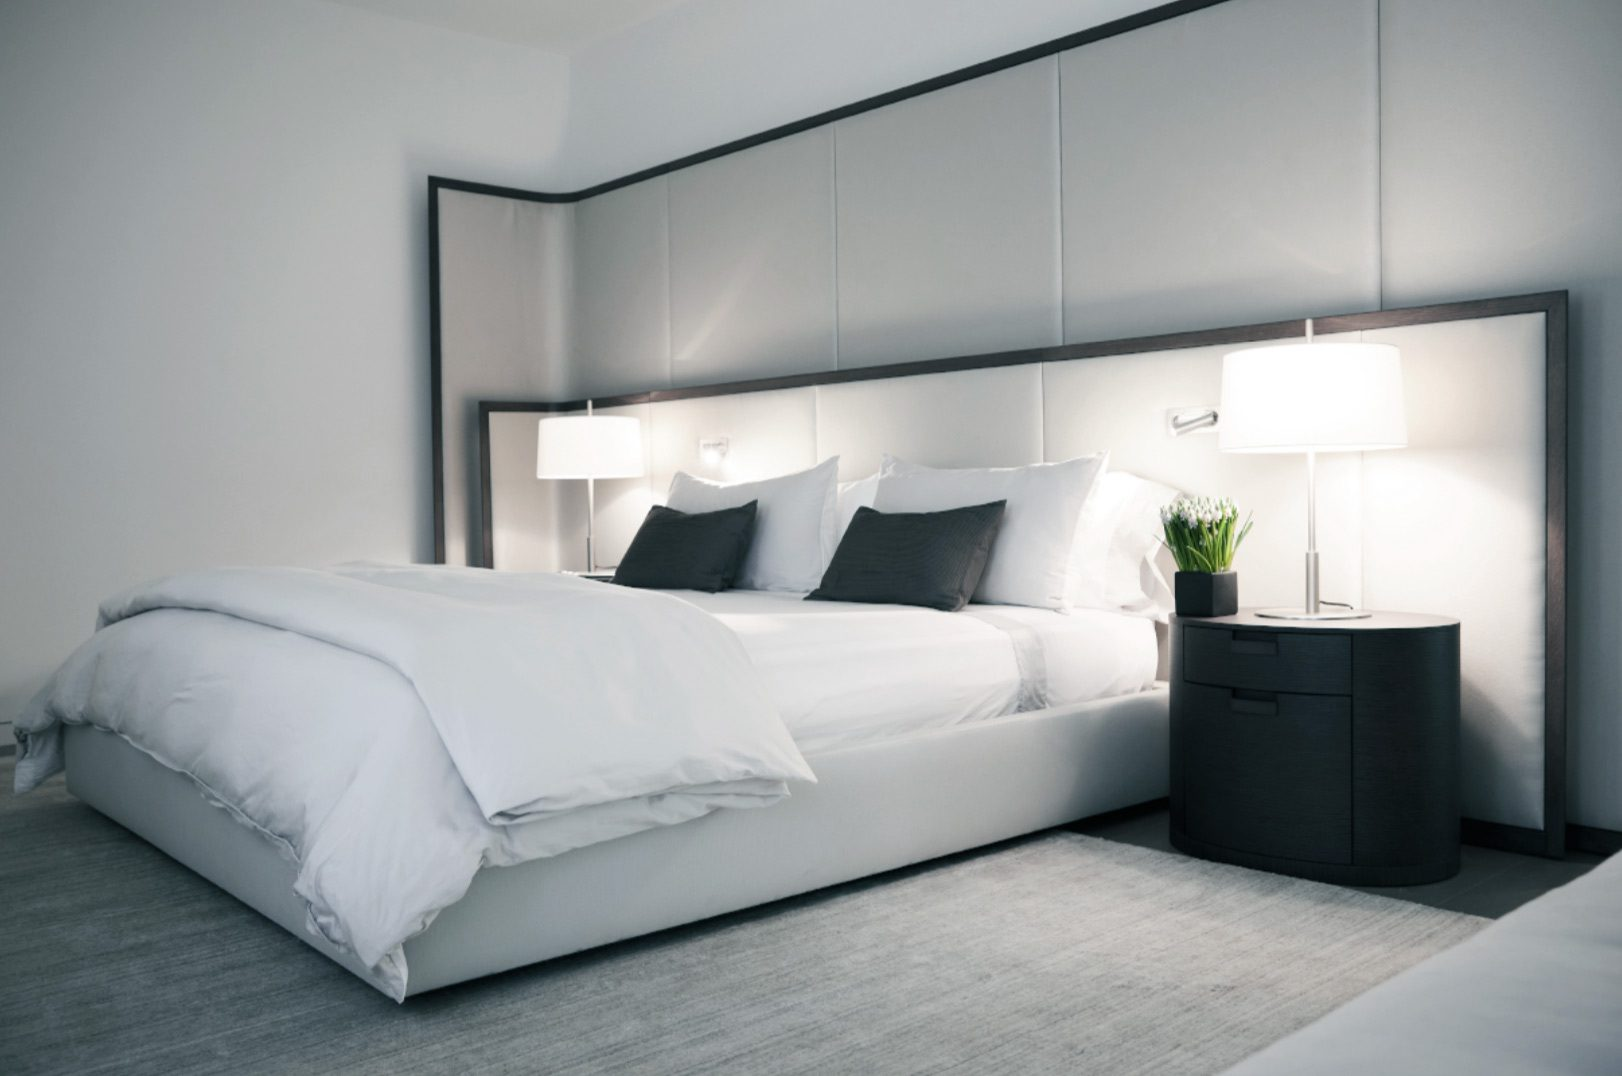 The Highline Bed